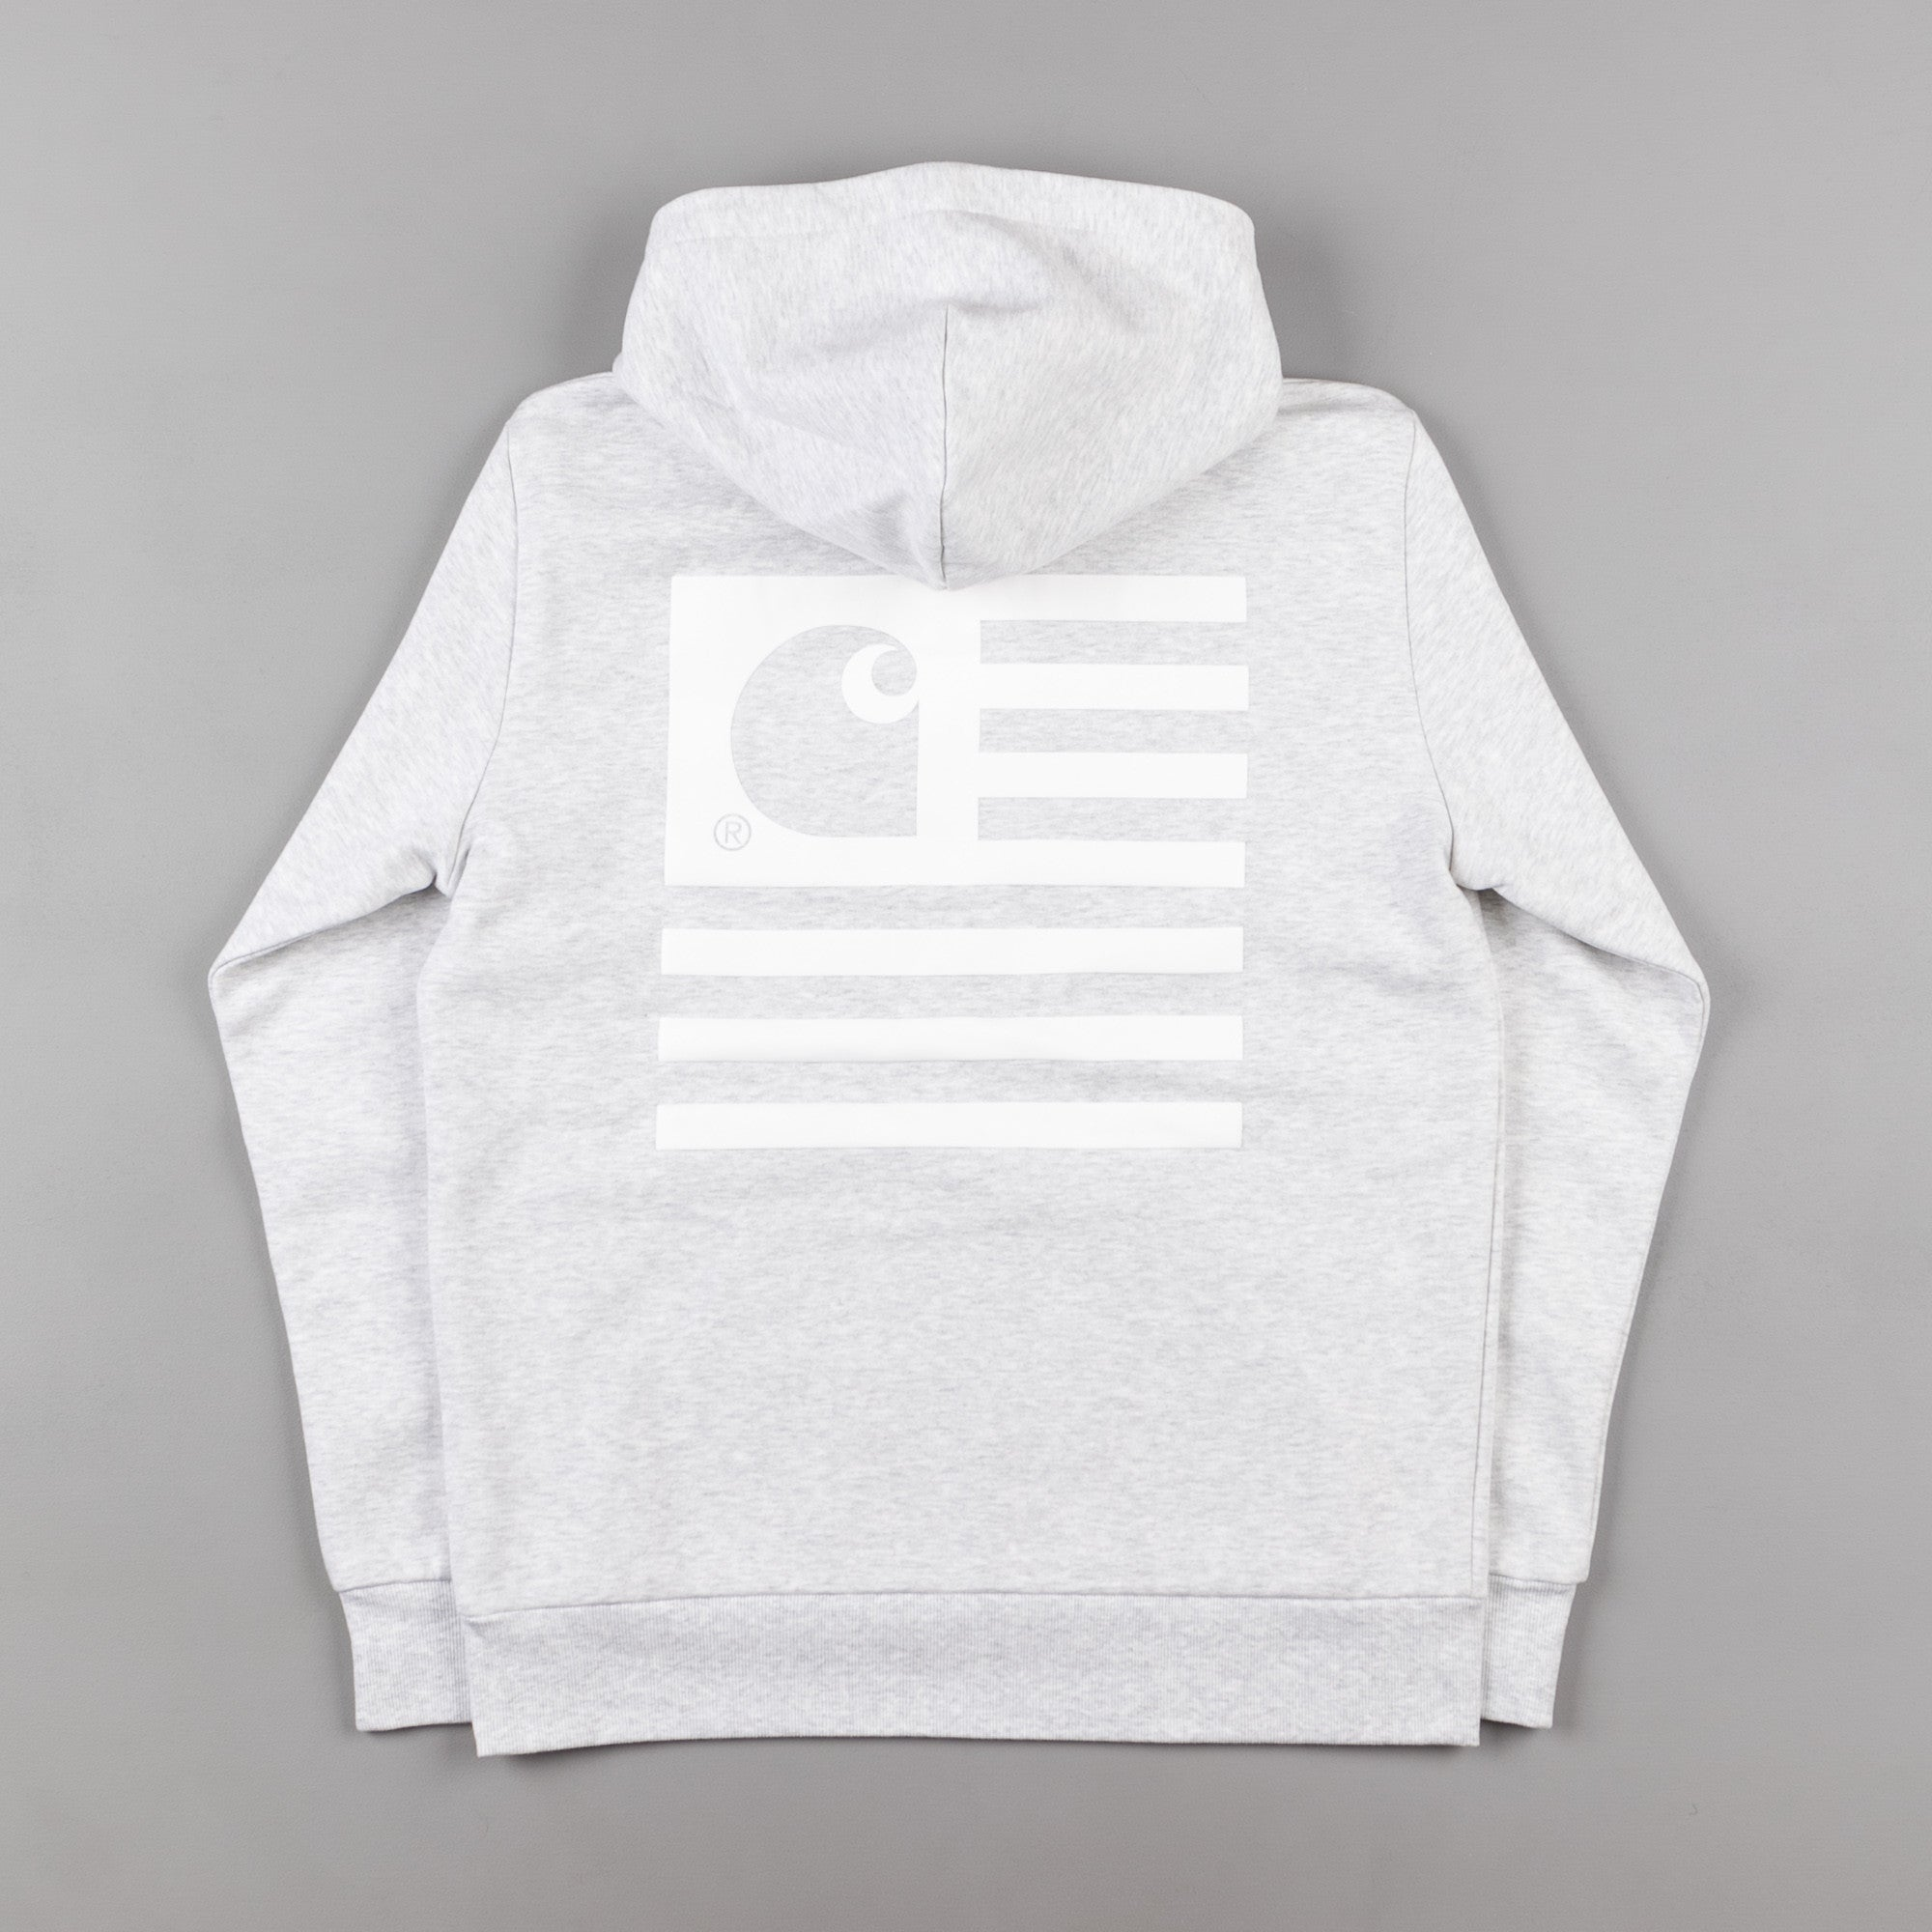 Carhartt State Flag Hooded Sweatshirt - Ash Heather / White